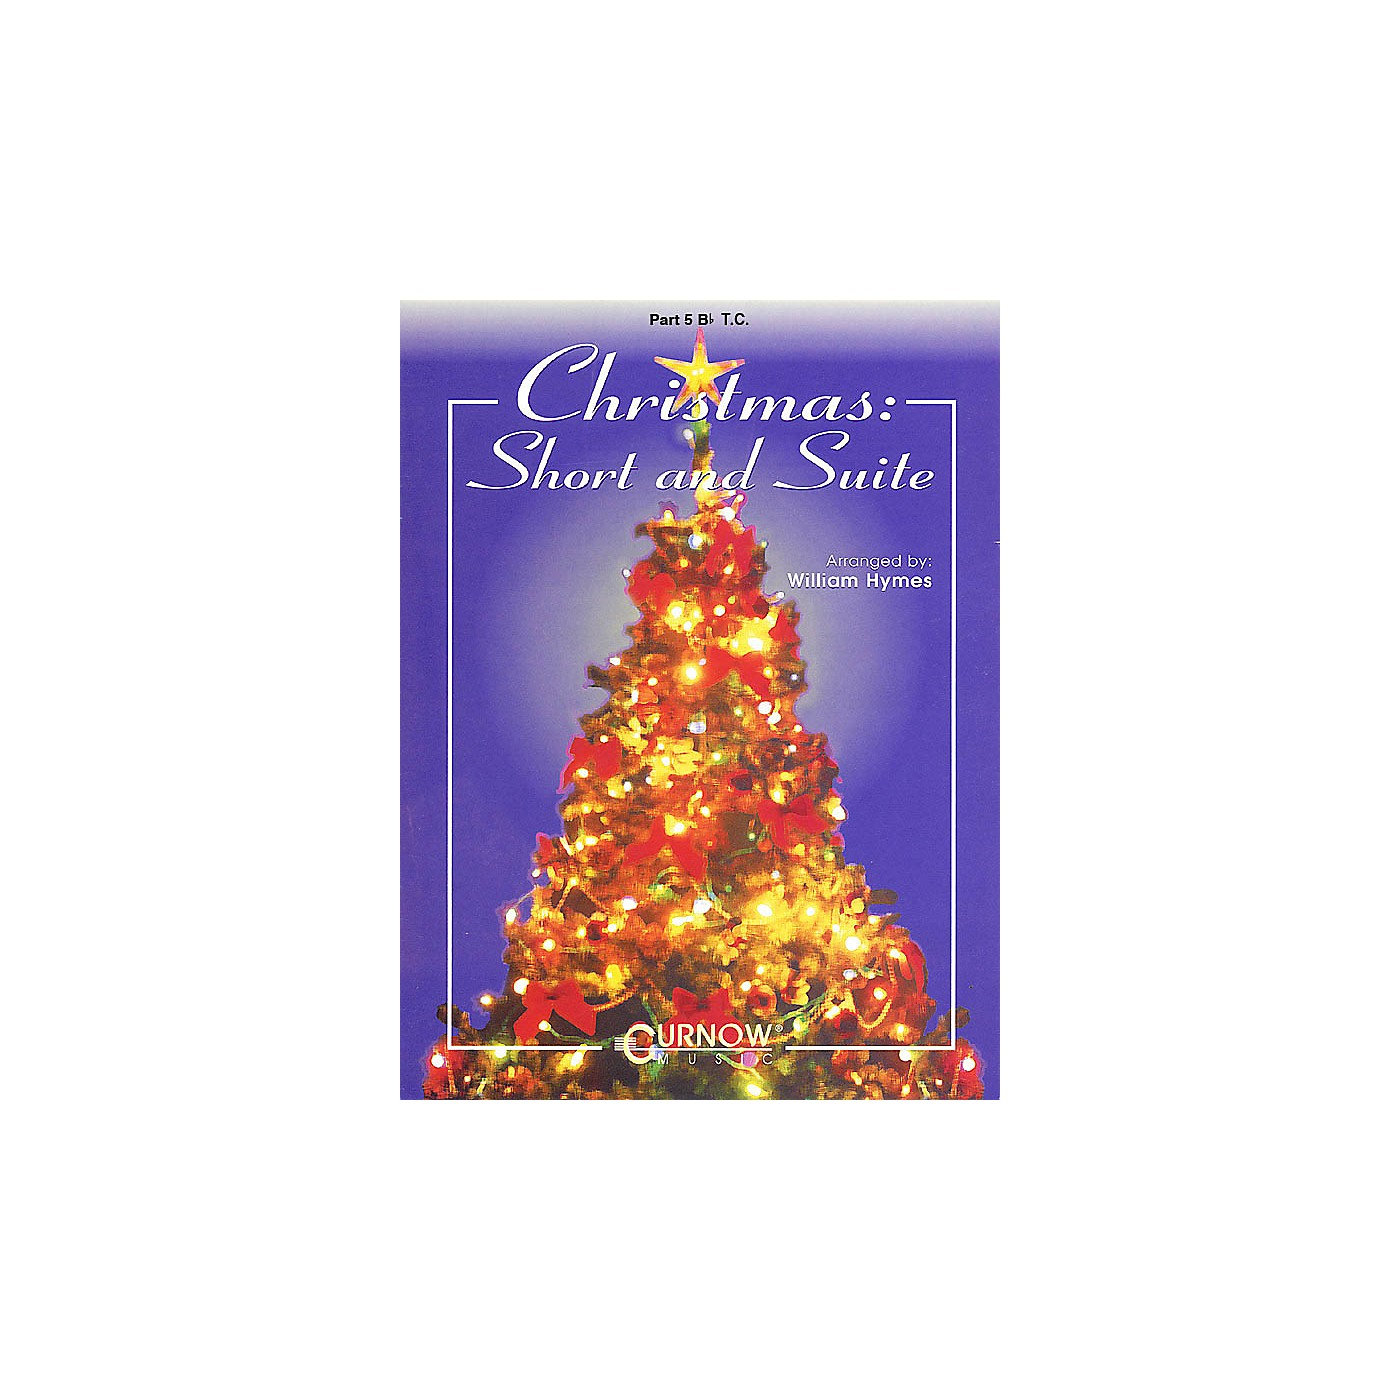 Curnow Music Christmas: Short and Suite (Part 5 in Bb (Treble Clef)) Concert Band Level 2-4 Arranged by William Himes thumbnail